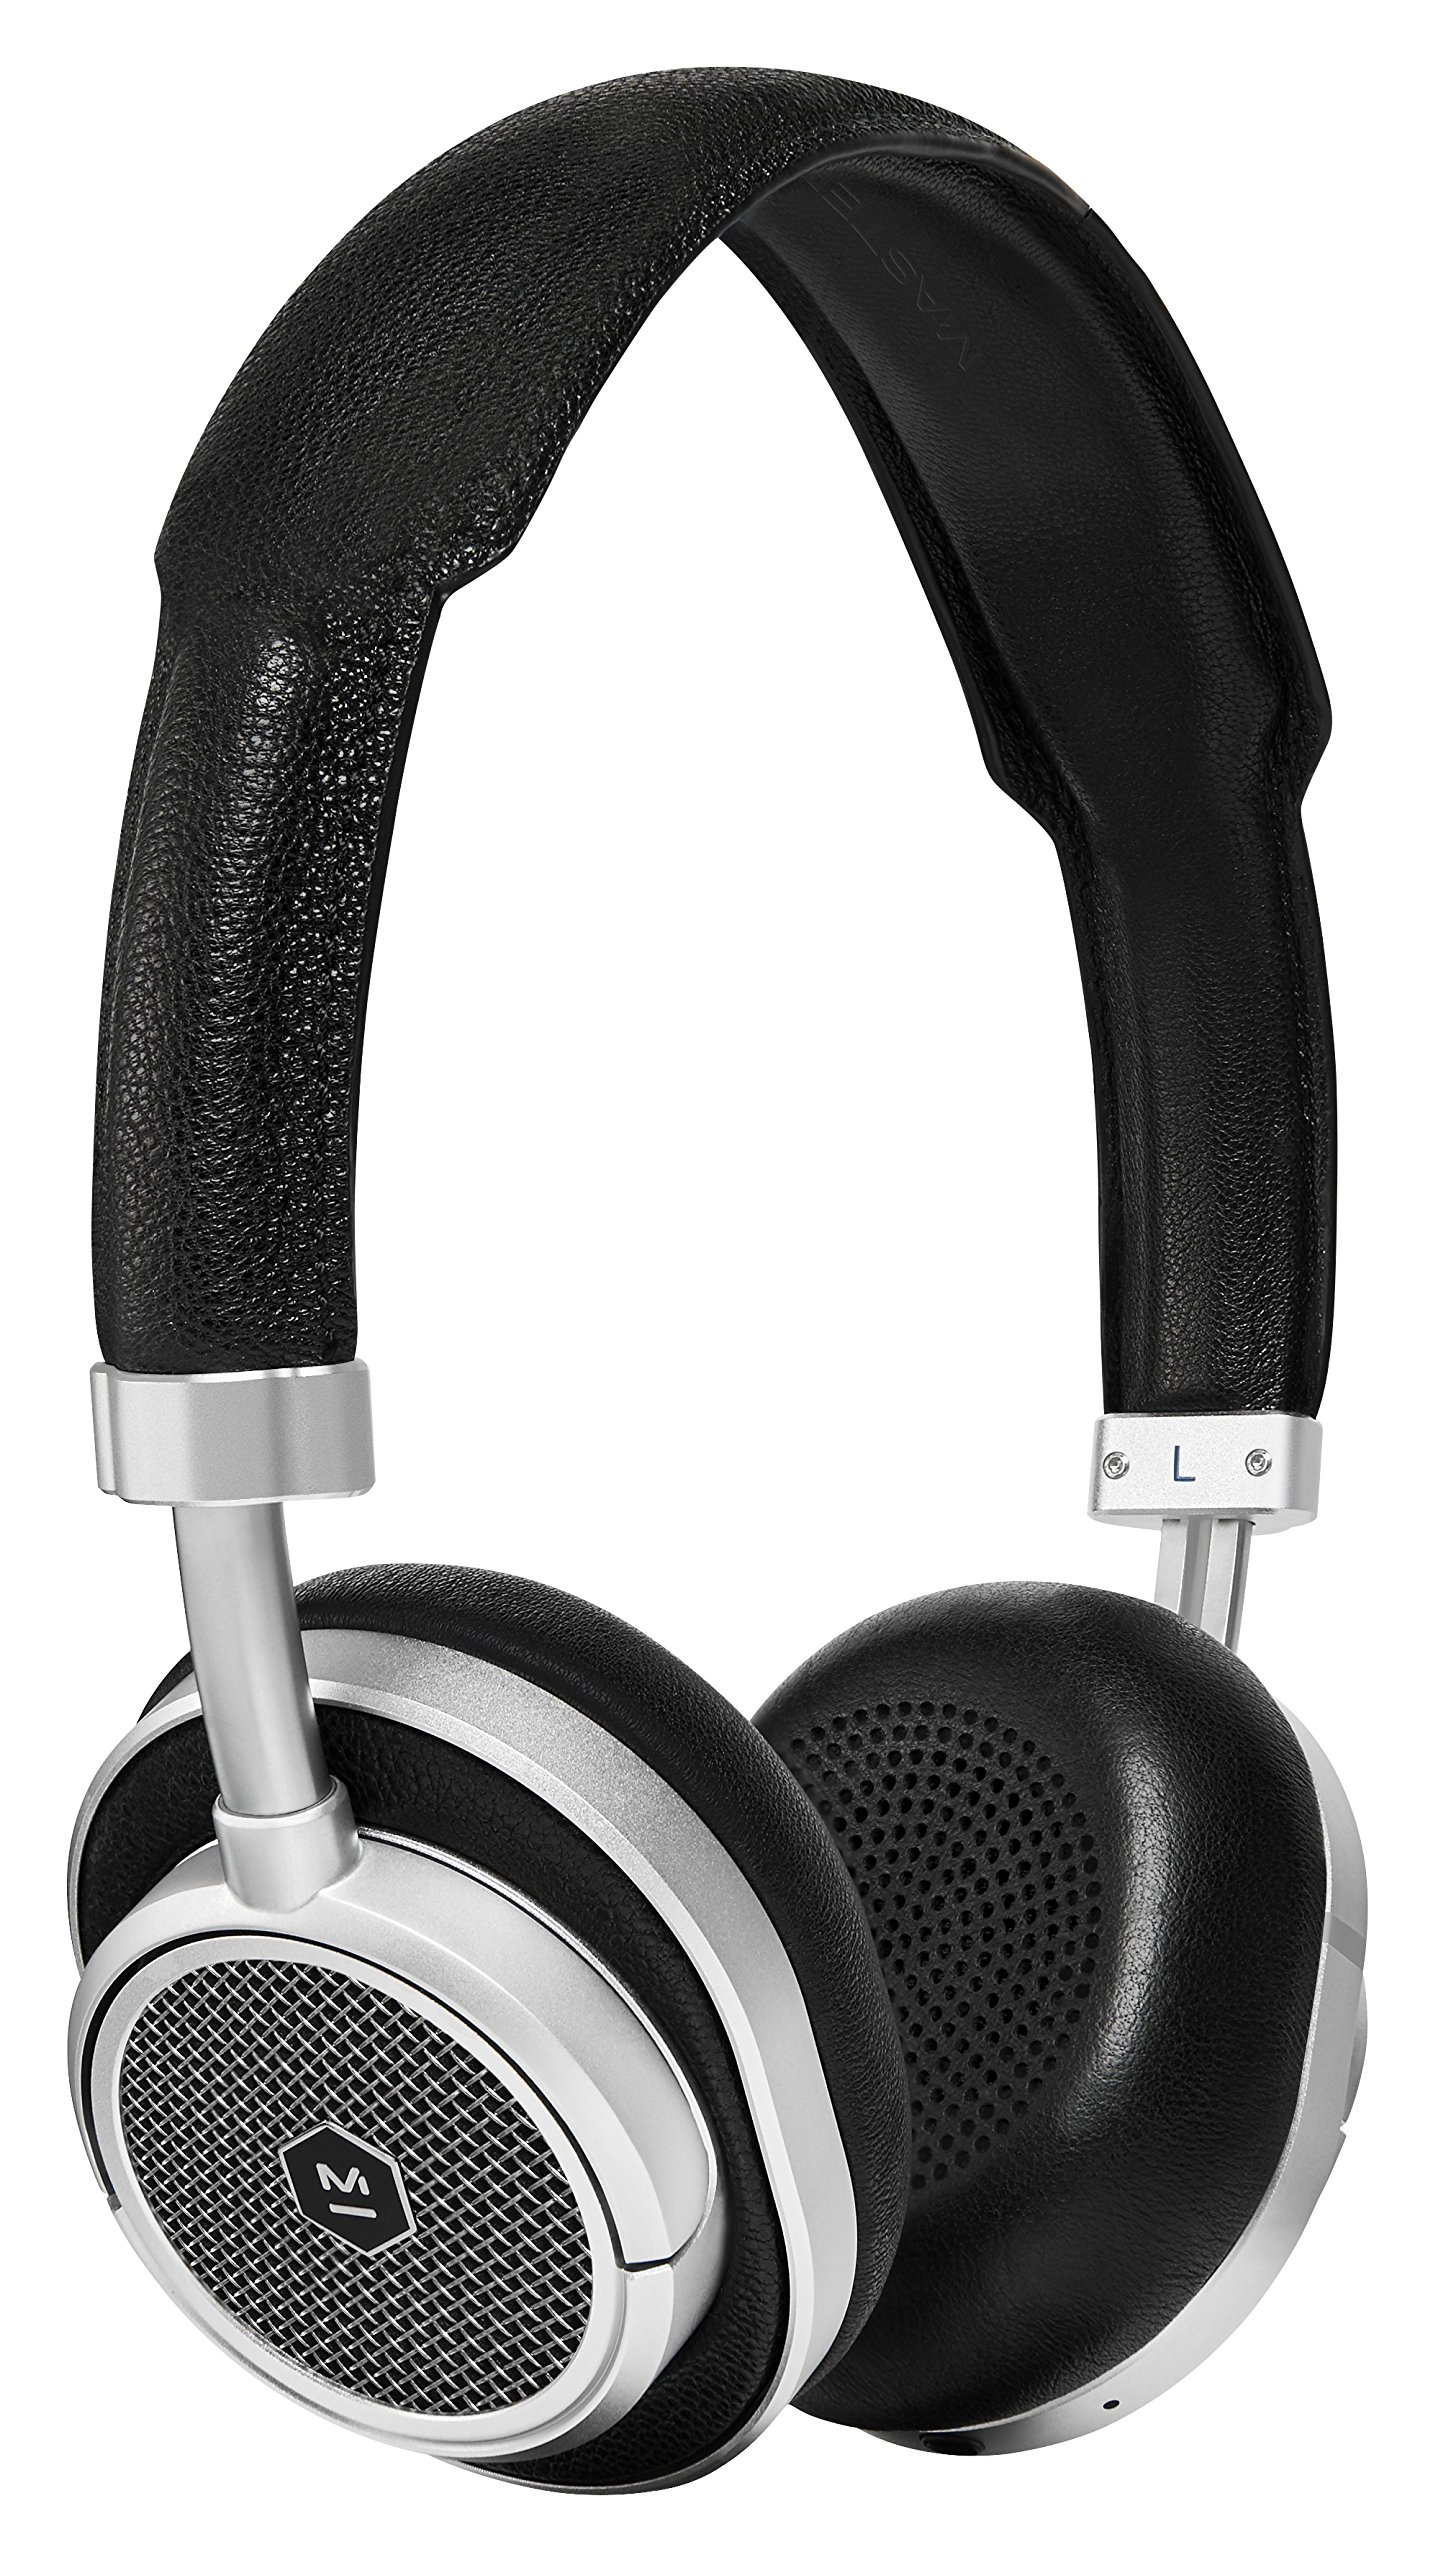 Master & Dynamic MW50S1 Black/Silver Wireless Bluetooth Headphones